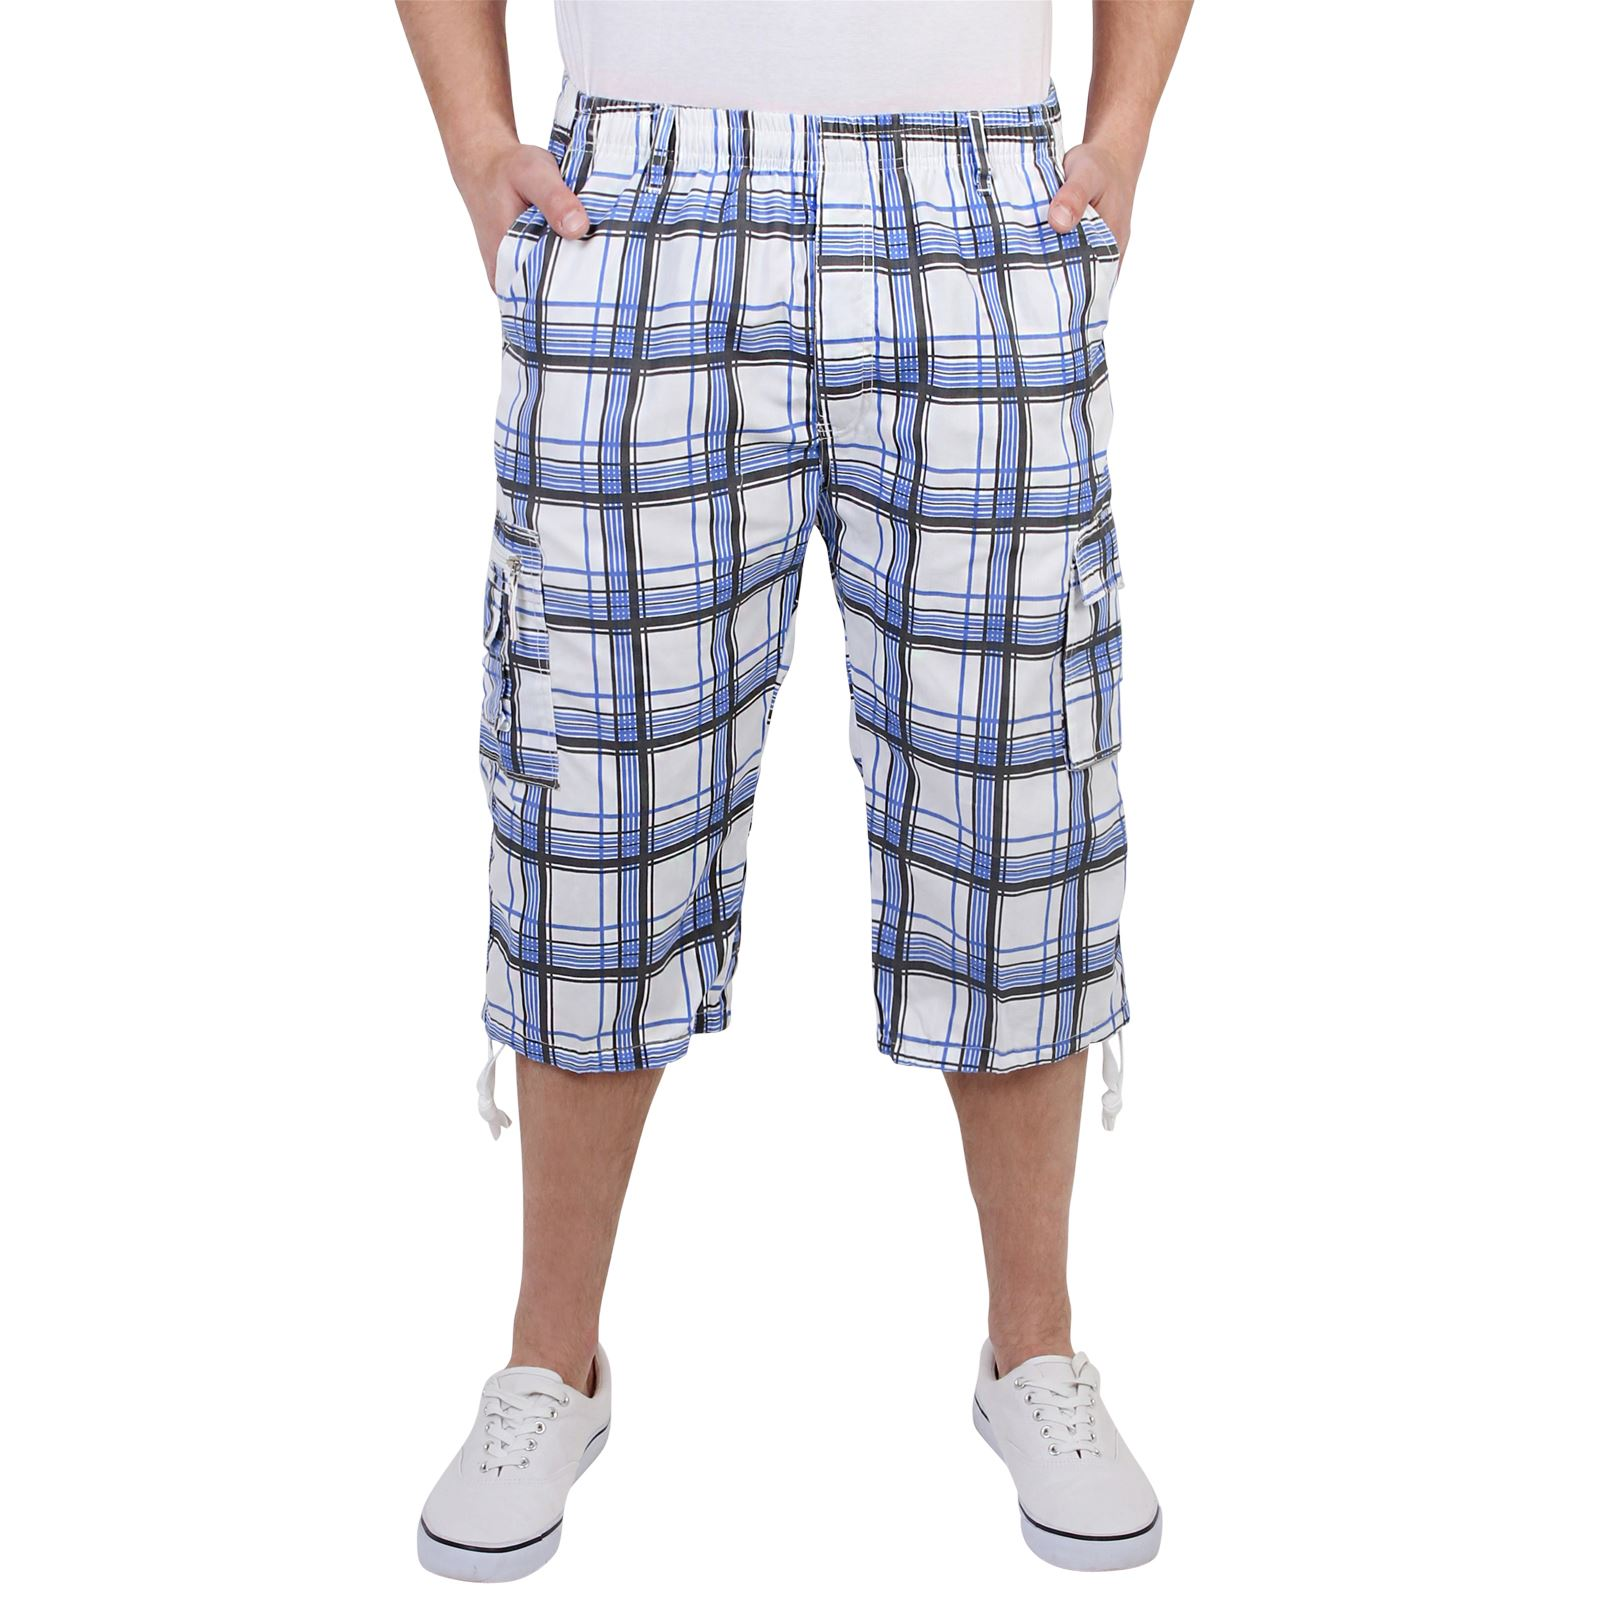 Our men's dress shorts, casual shorts, chino shorts, cargo shorts, golf shorts, khaki shorts and Bermuda shorts are made of the best quality, lightweight, comfortable-to-wear materials—like cotton, garment-dyed cotton, Indian madras, Bedford canvas cord and cotton chambray—to ensure you will experience a sophisticated fit and long-lasting.